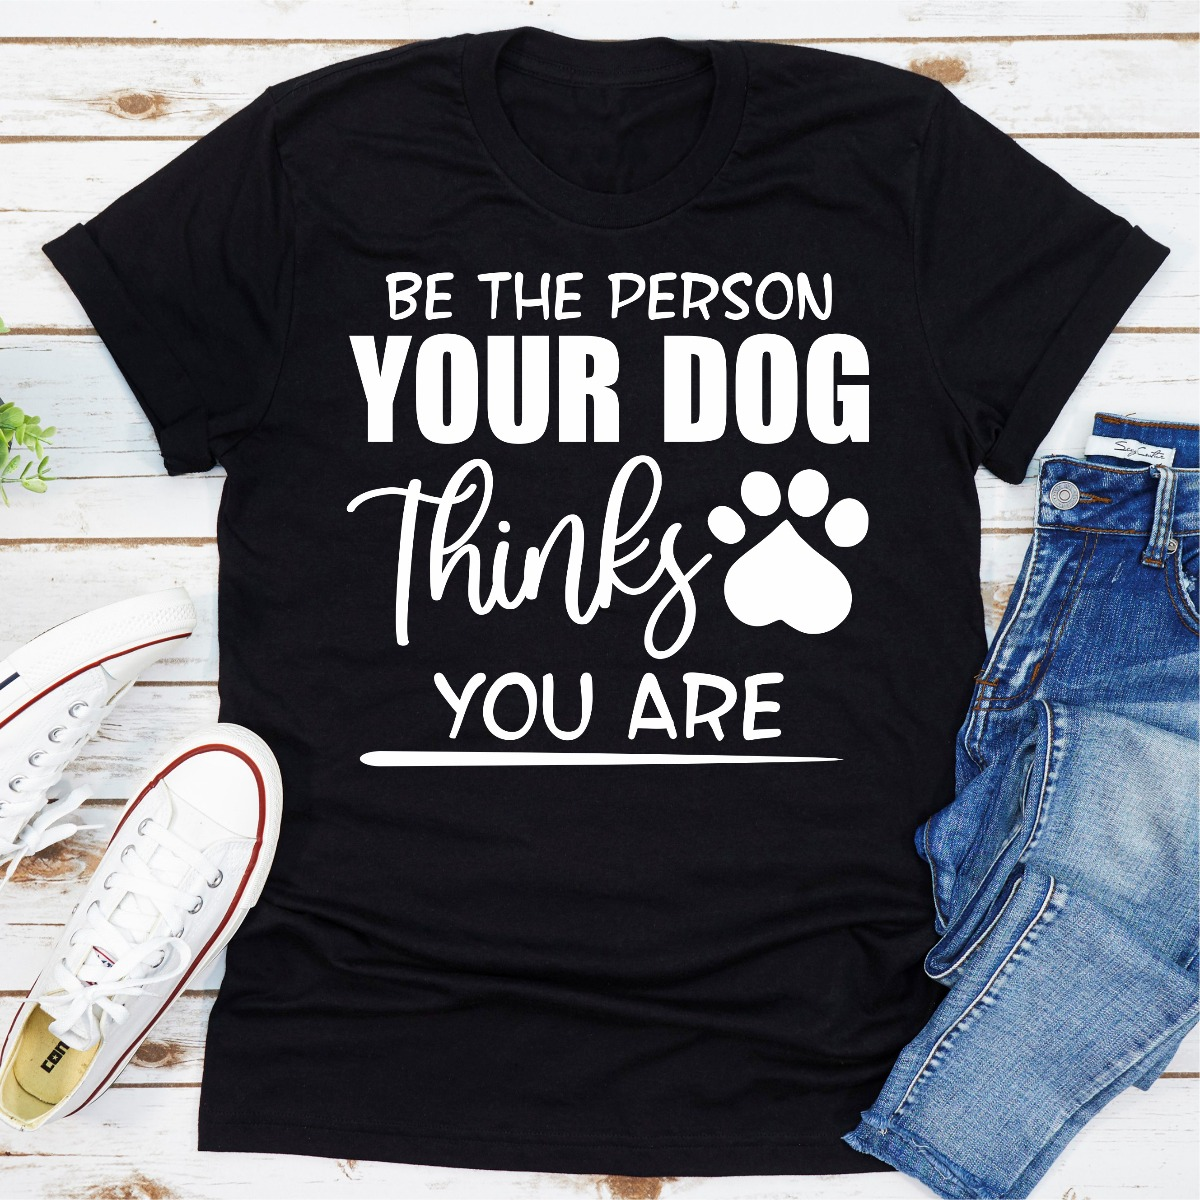 Be The Person Your Dog Thinks You Are (Black / S)